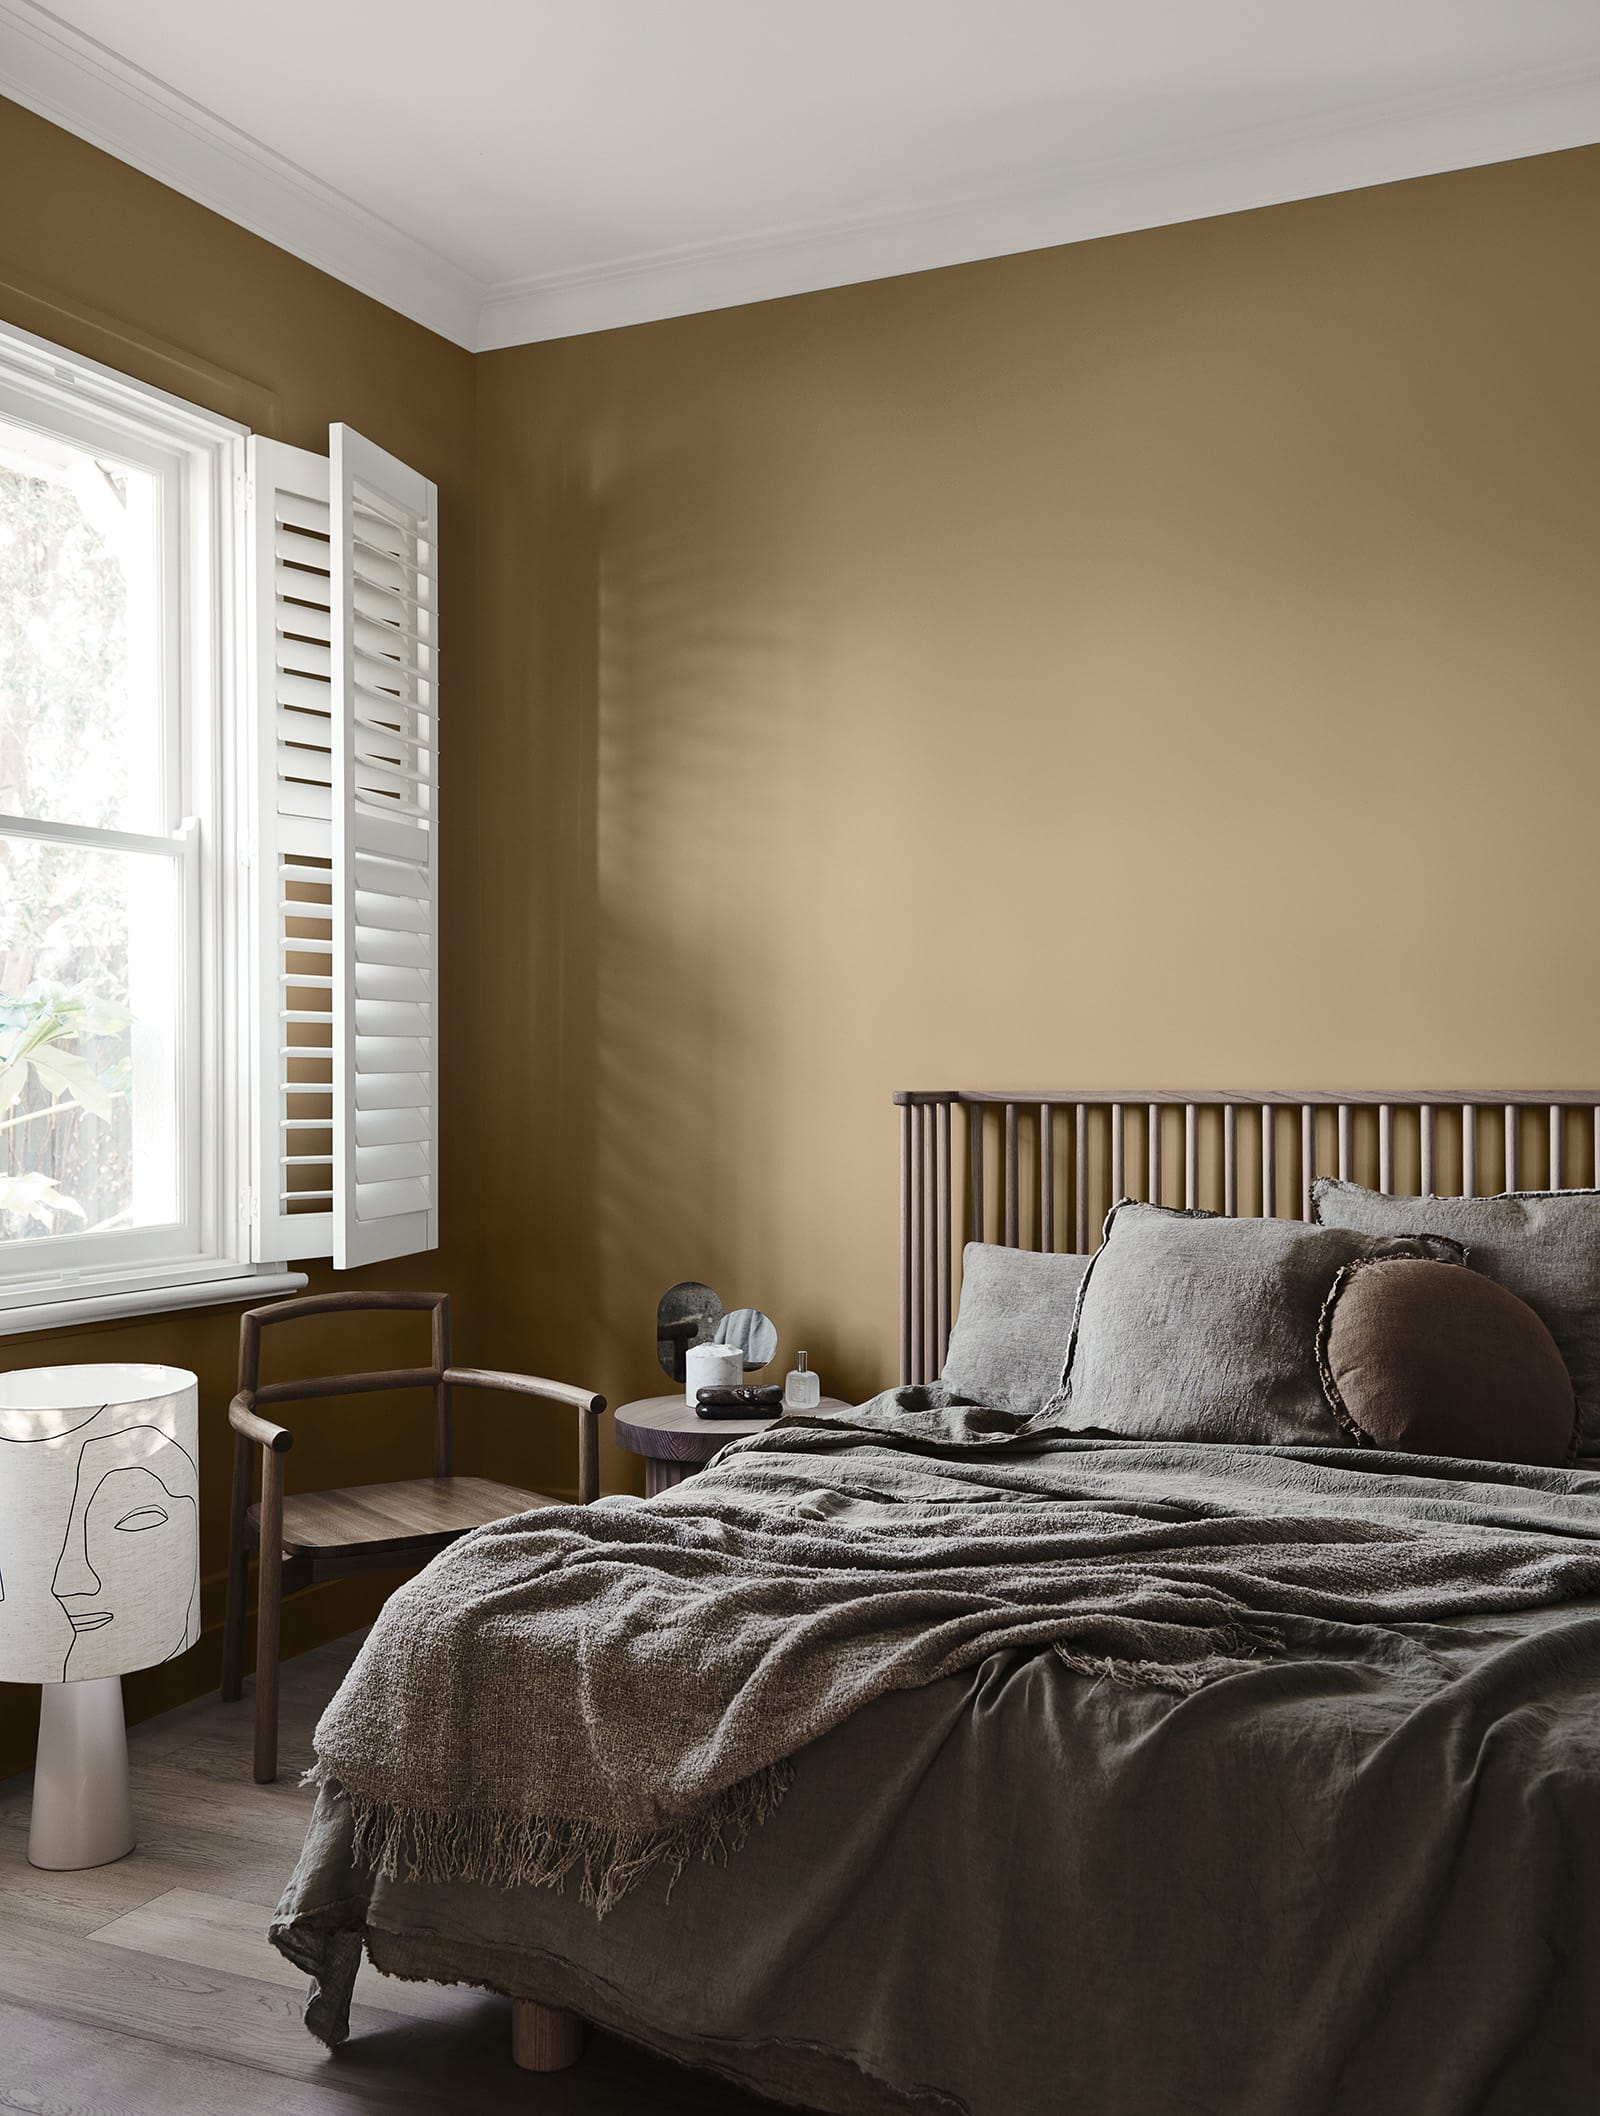 bedroom with caramel walls and dark brown bedspread neutral interior design scheme